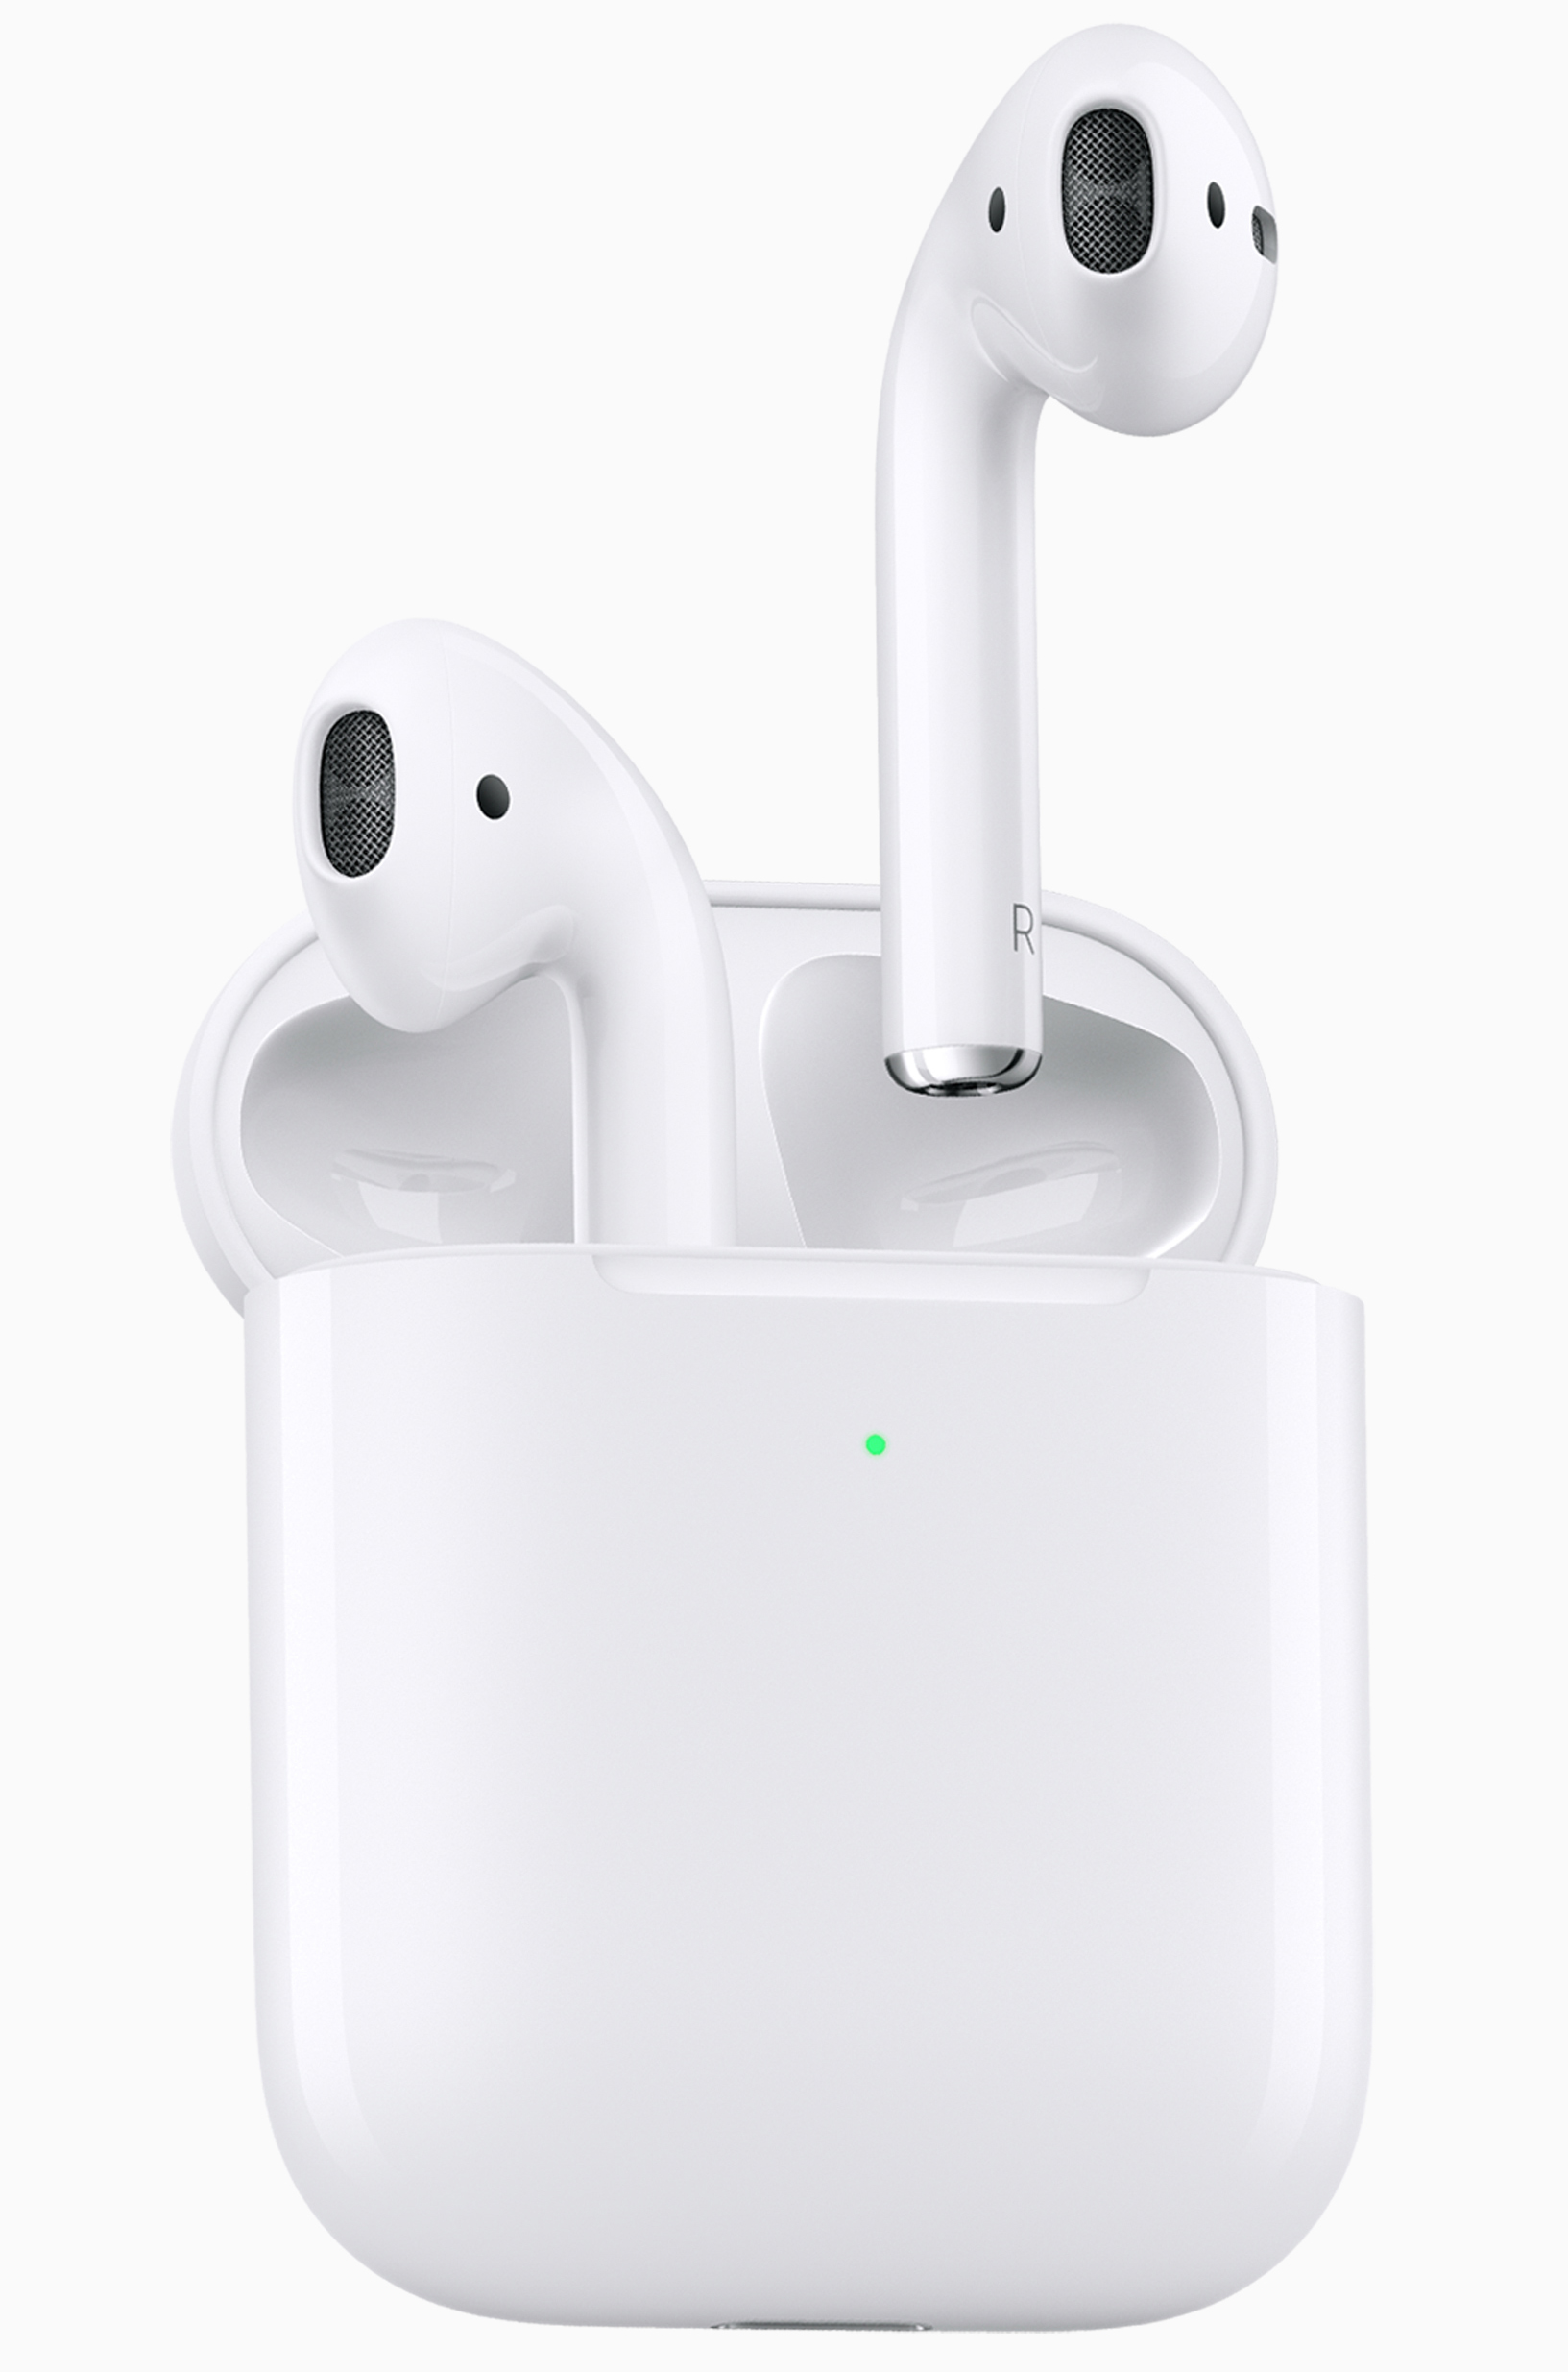 Apple Launches 2nd Gen AirPods: Longer Talk Time & Hands